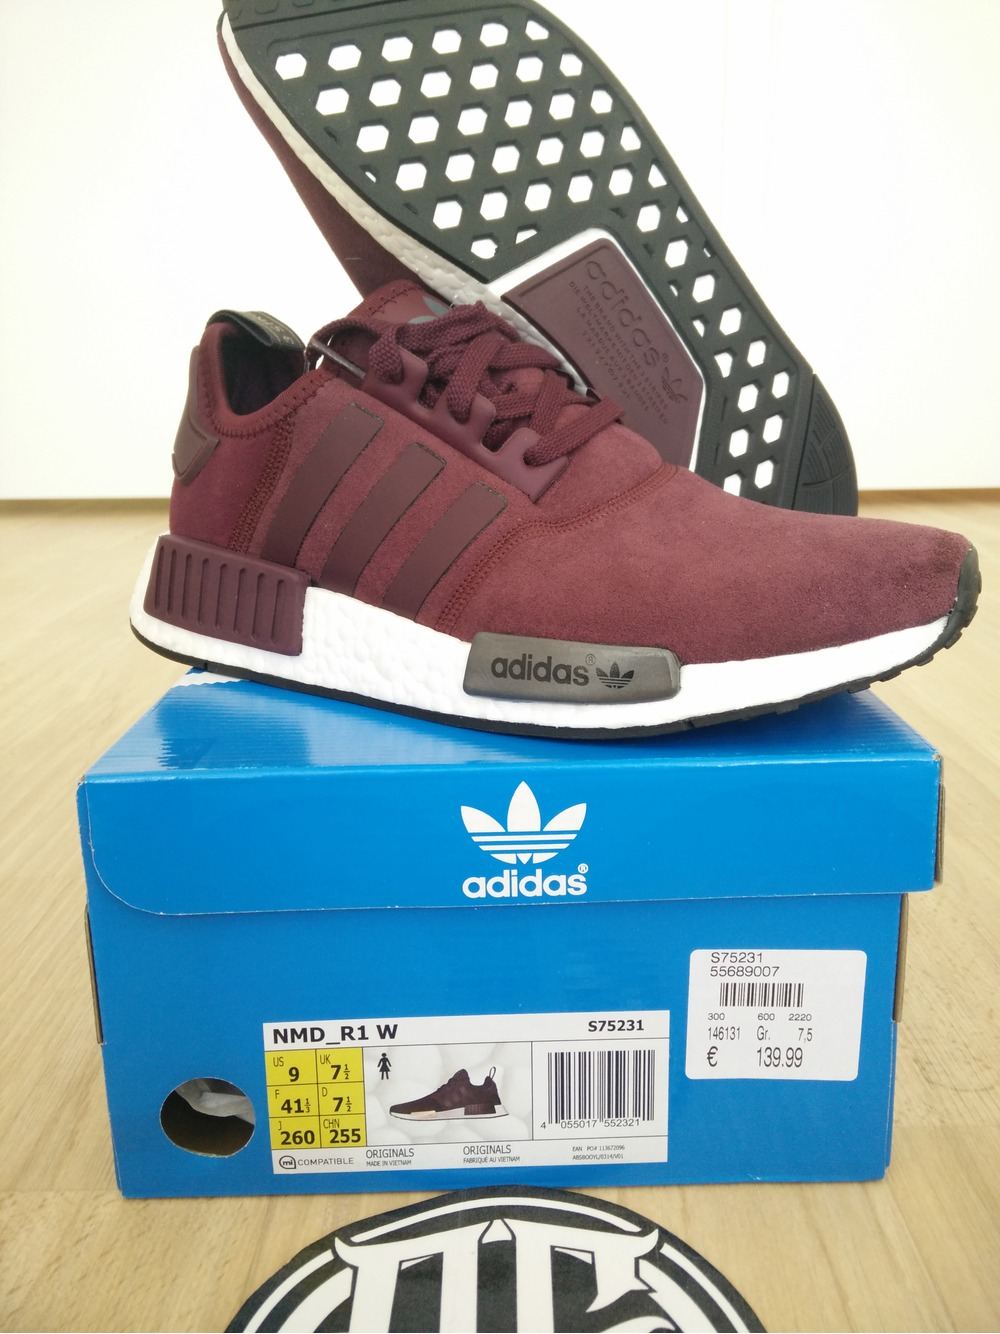 adidas 41 1/3 in us